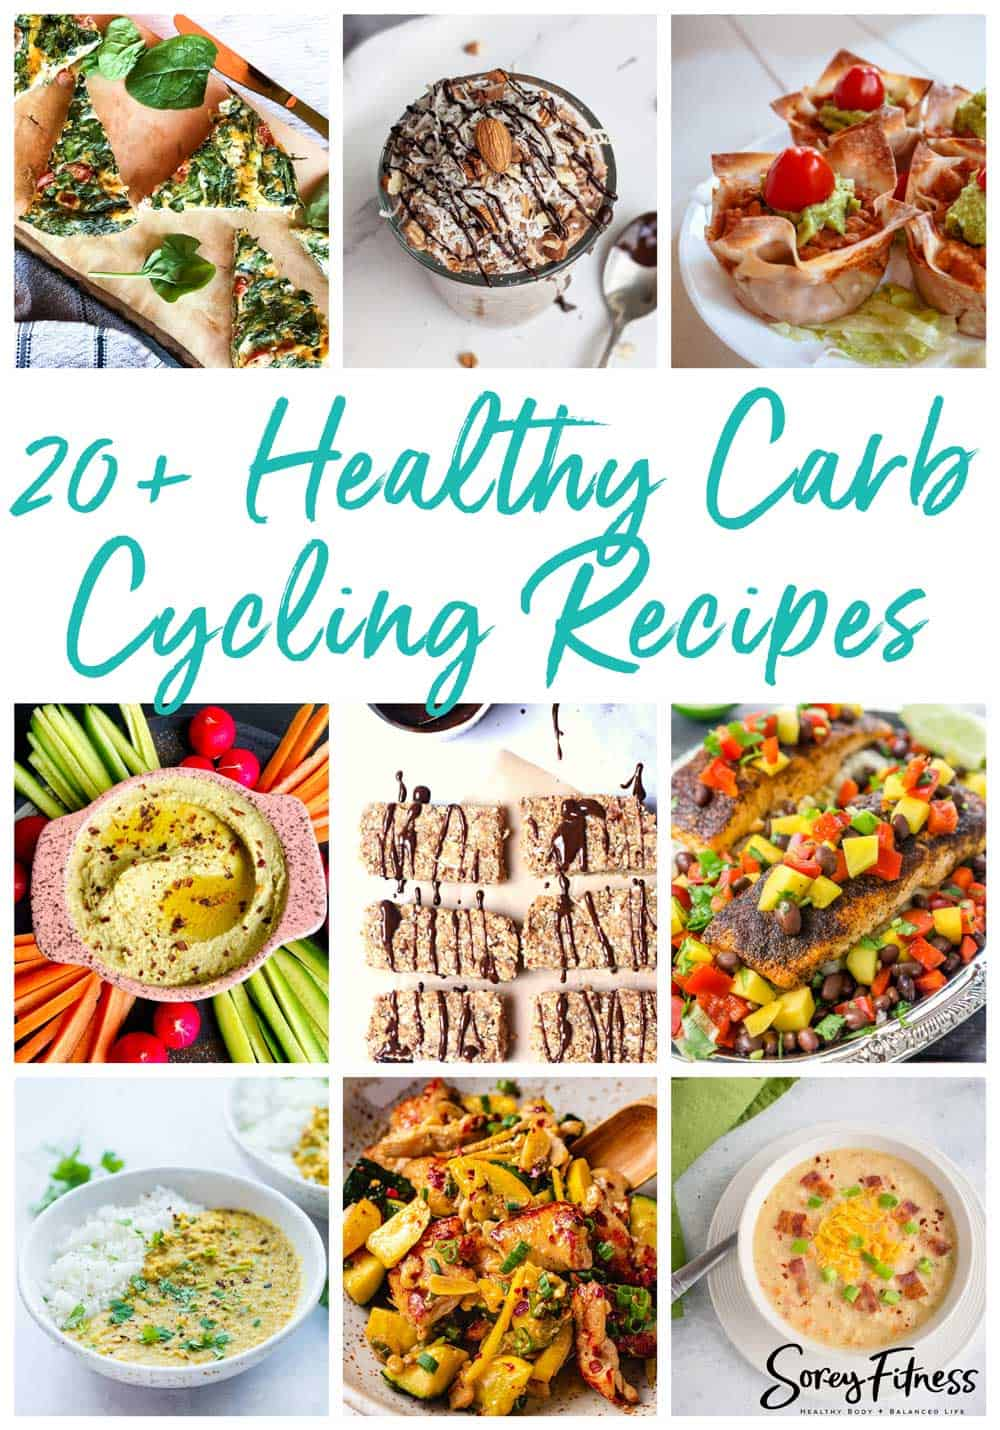 photo collage of various recipes that are good for carb cycling